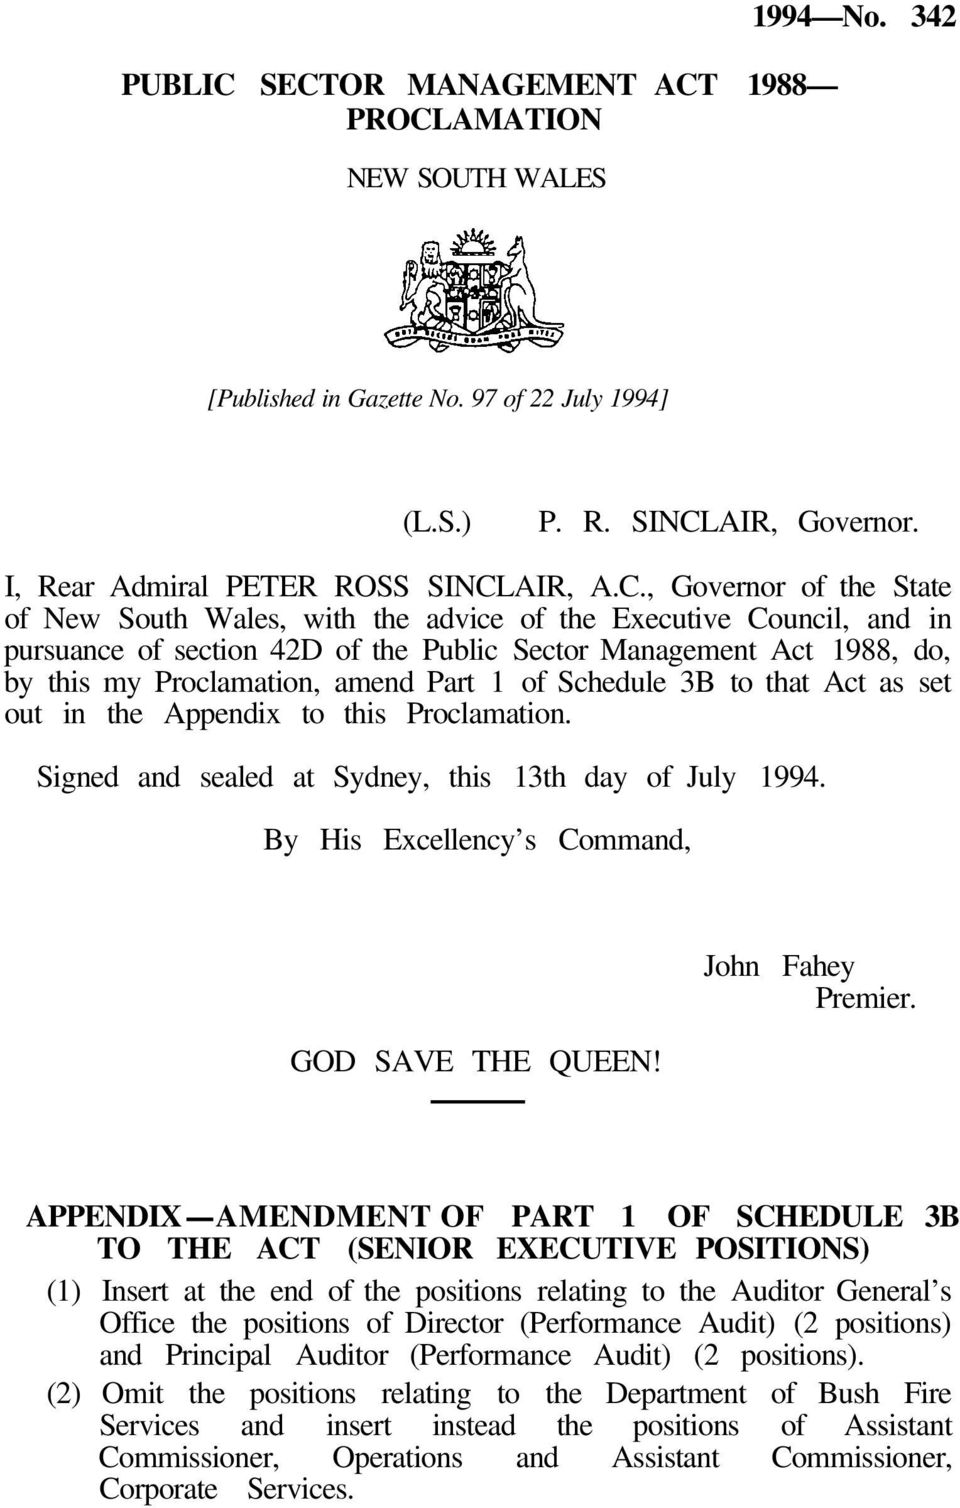 of New South Wales, with the advice of the Executive Council, and in pursuance of section 42D of the Public Sector Management Act 1988, do, by this my Proclamation, amend Part 1 of Schedule 3B to